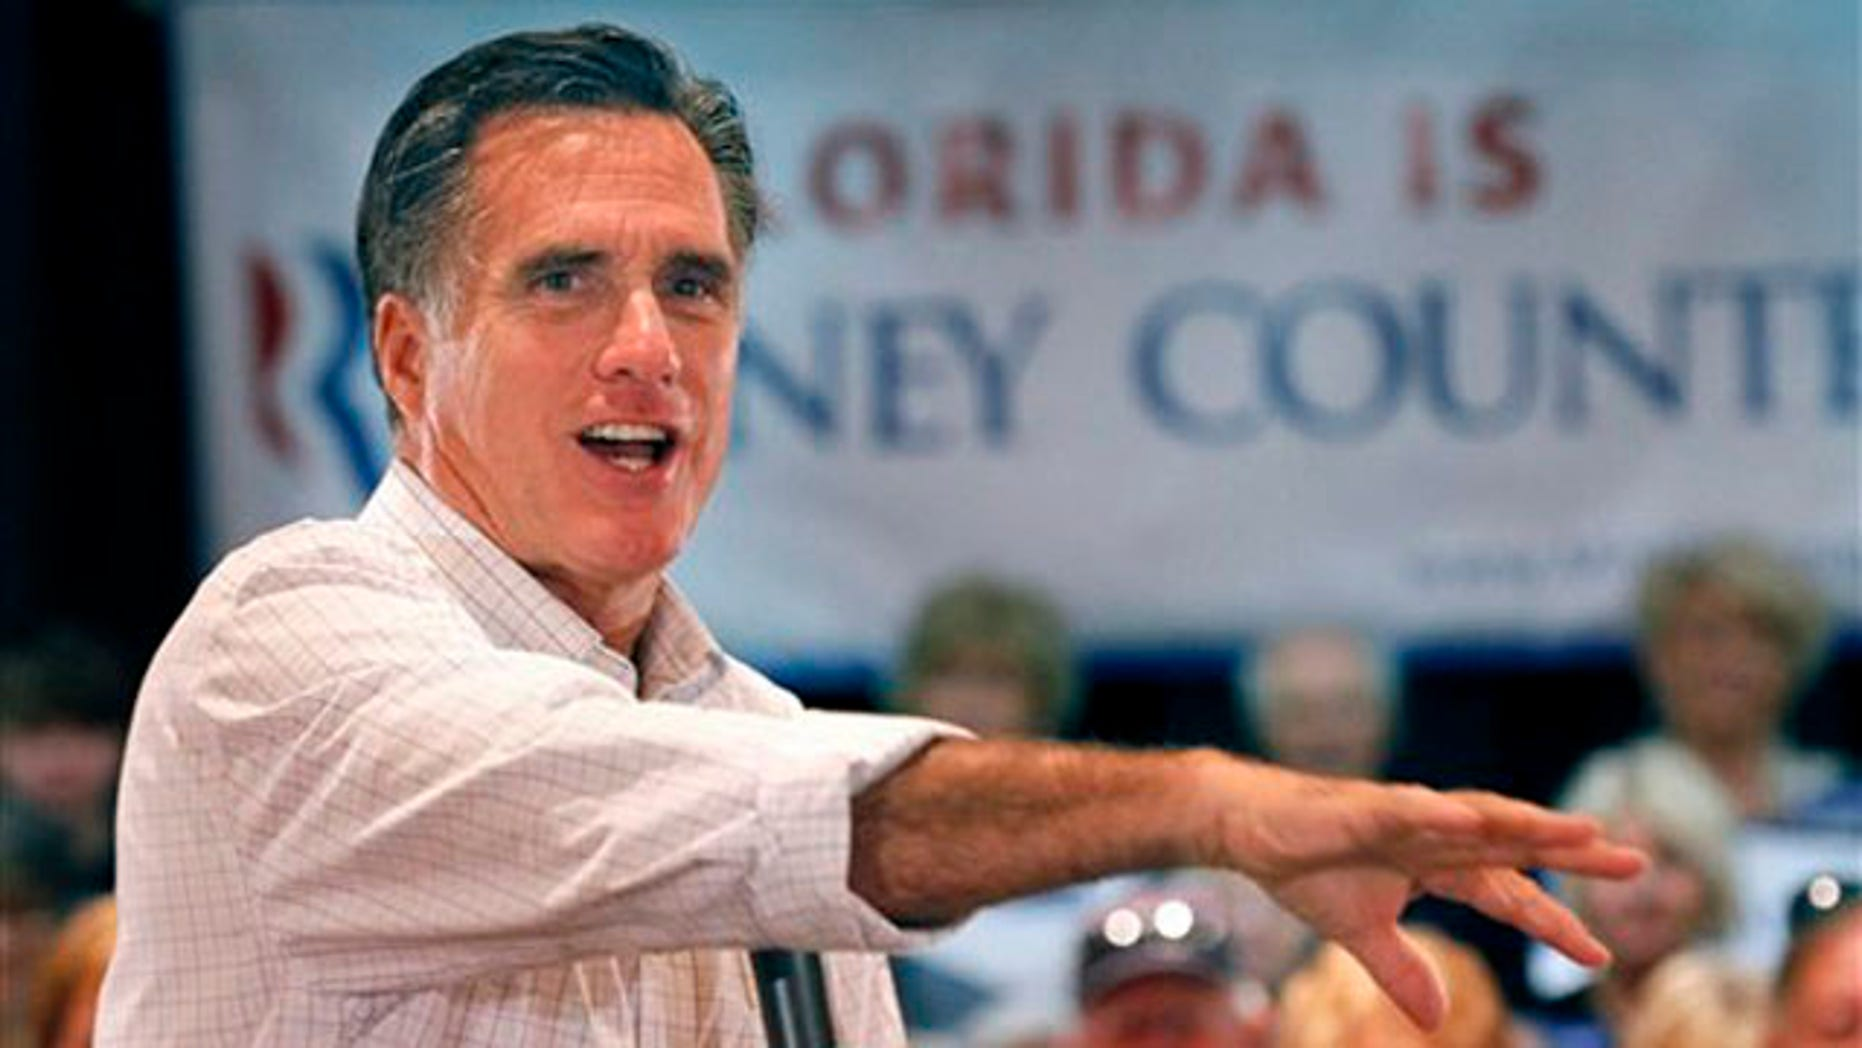 Oct. 4, 2011: Mitt Romney speaks at a town hall meeting in The Villages, Fla.